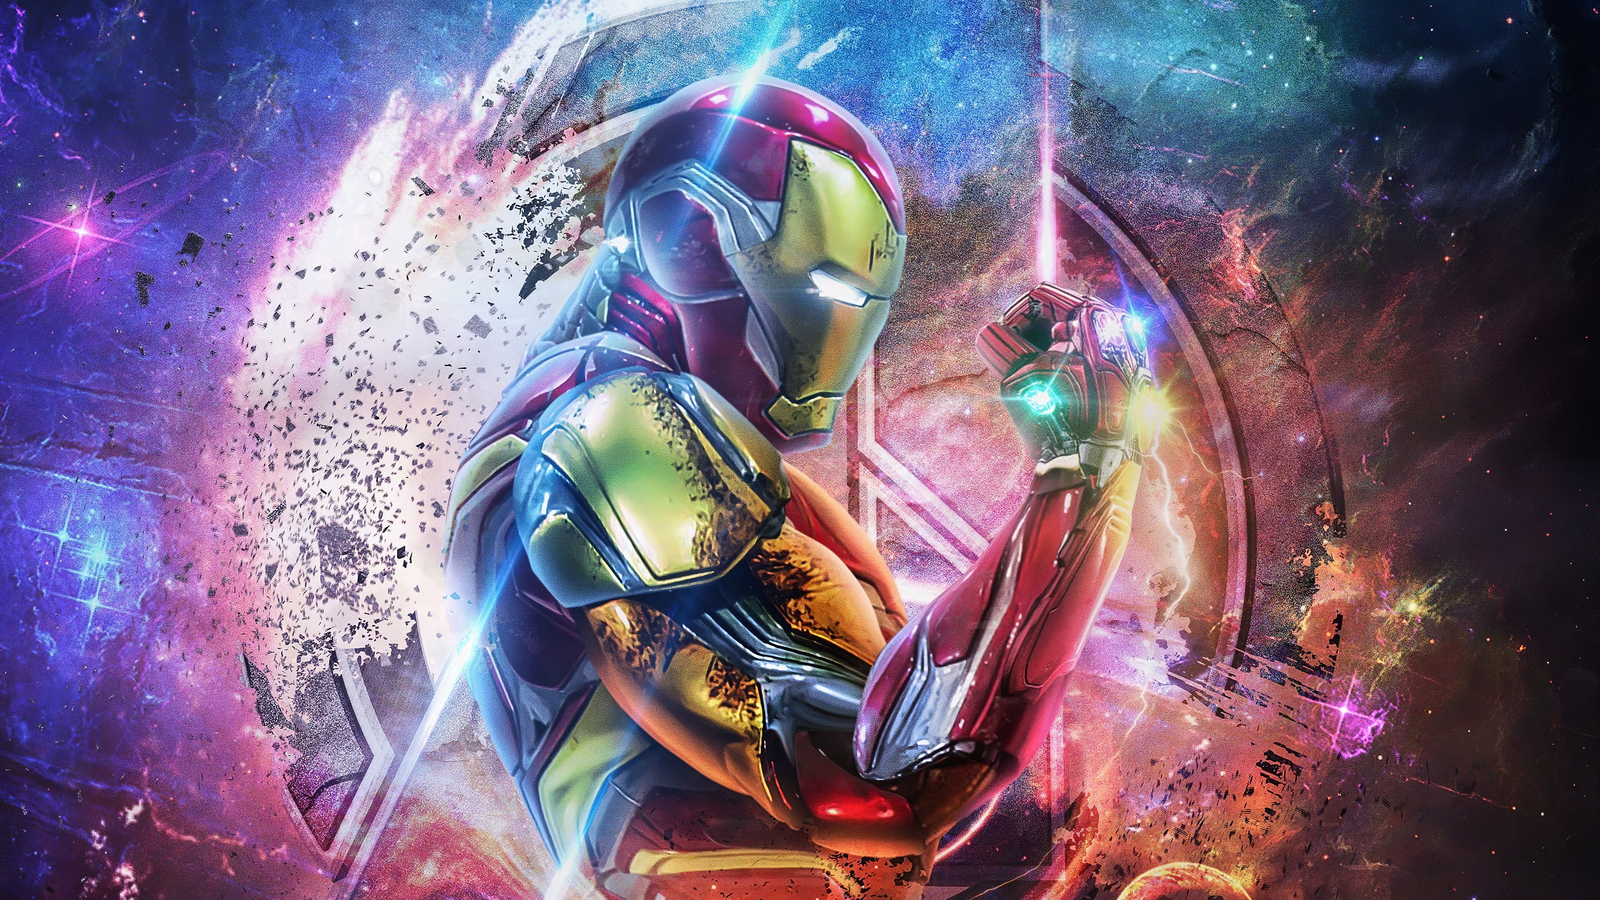 1600x900 Iron Man 4k Avengers Endgame 1600x900 Resolution Hd 4k Wallpapers Images Backgrounds Photos And Pictures